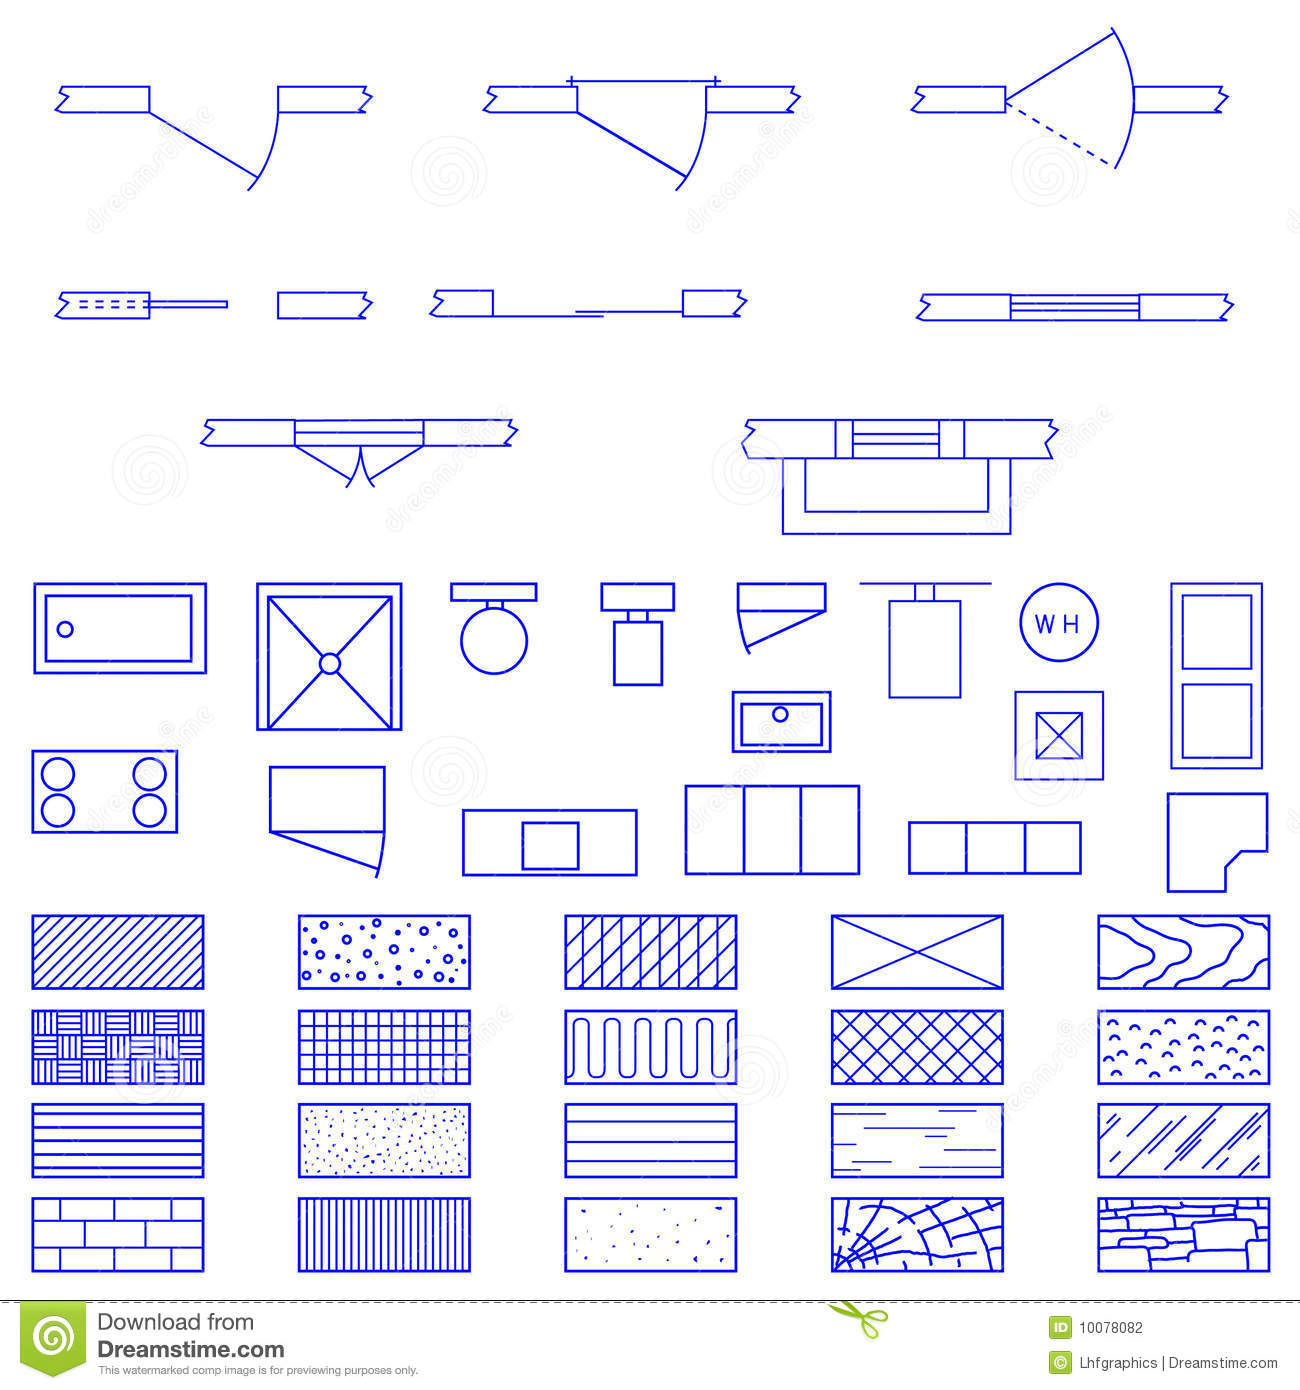 Blueprint symbols used by architects stock vector illustration of download blueprint symbols used by architects stock vector illustration of detail schematic 10078082 malvernweather Images